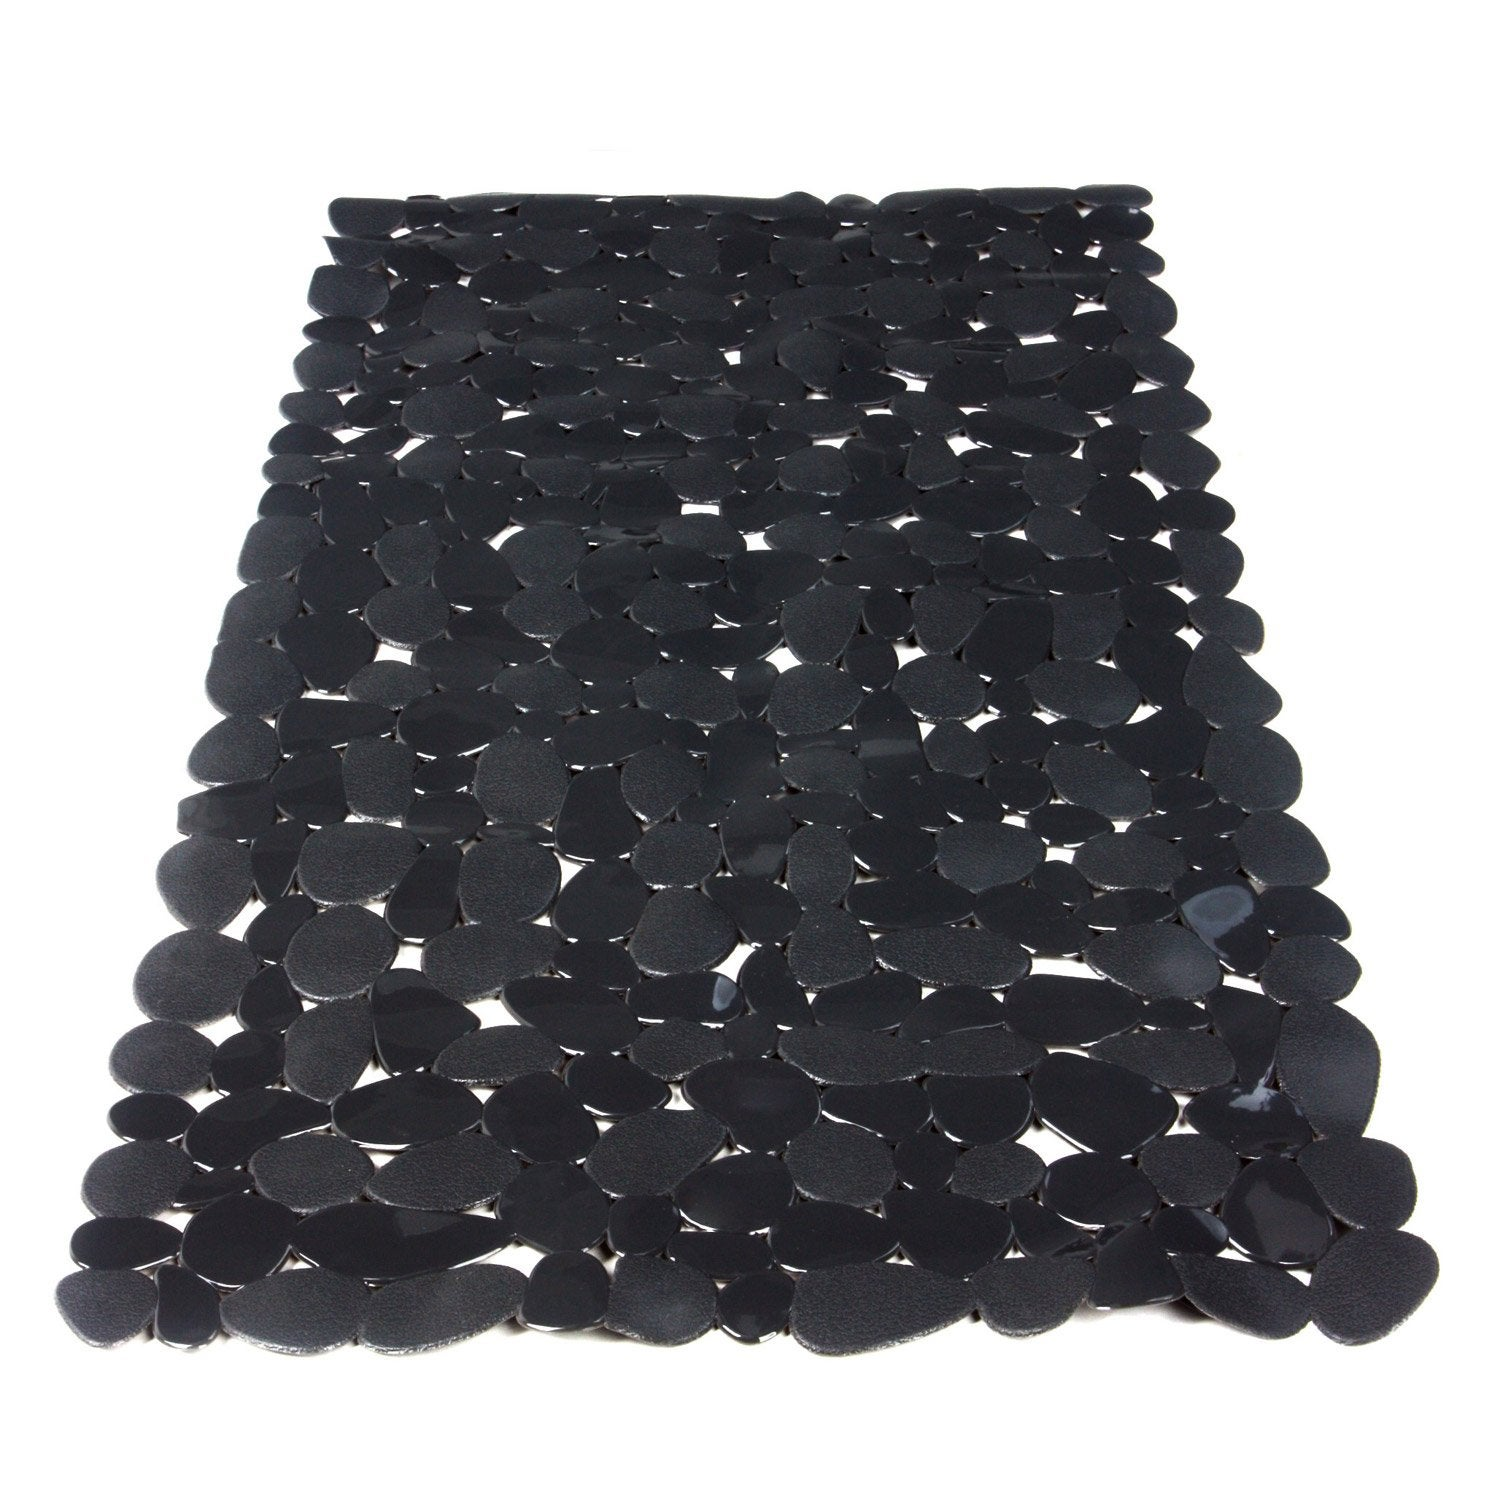 tapis antid rapant gris pour baignoire stone sensea leroy merlin. Black Bedroom Furniture Sets. Home Design Ideas